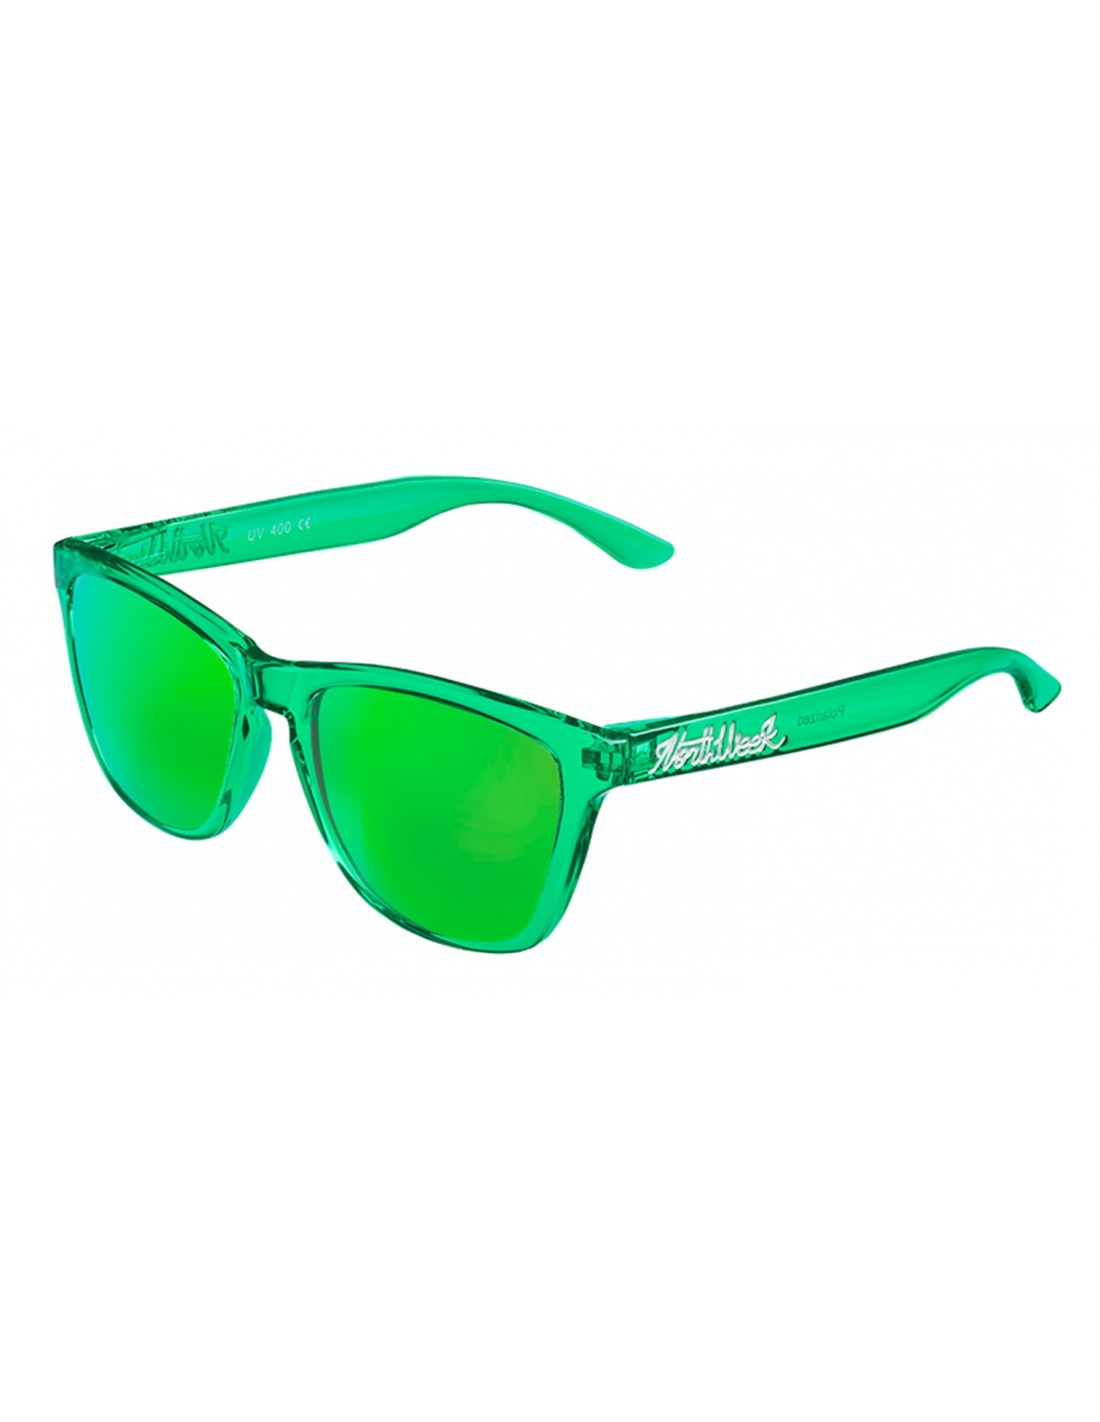 Gafas de sol Northweek ALL Aquamarina